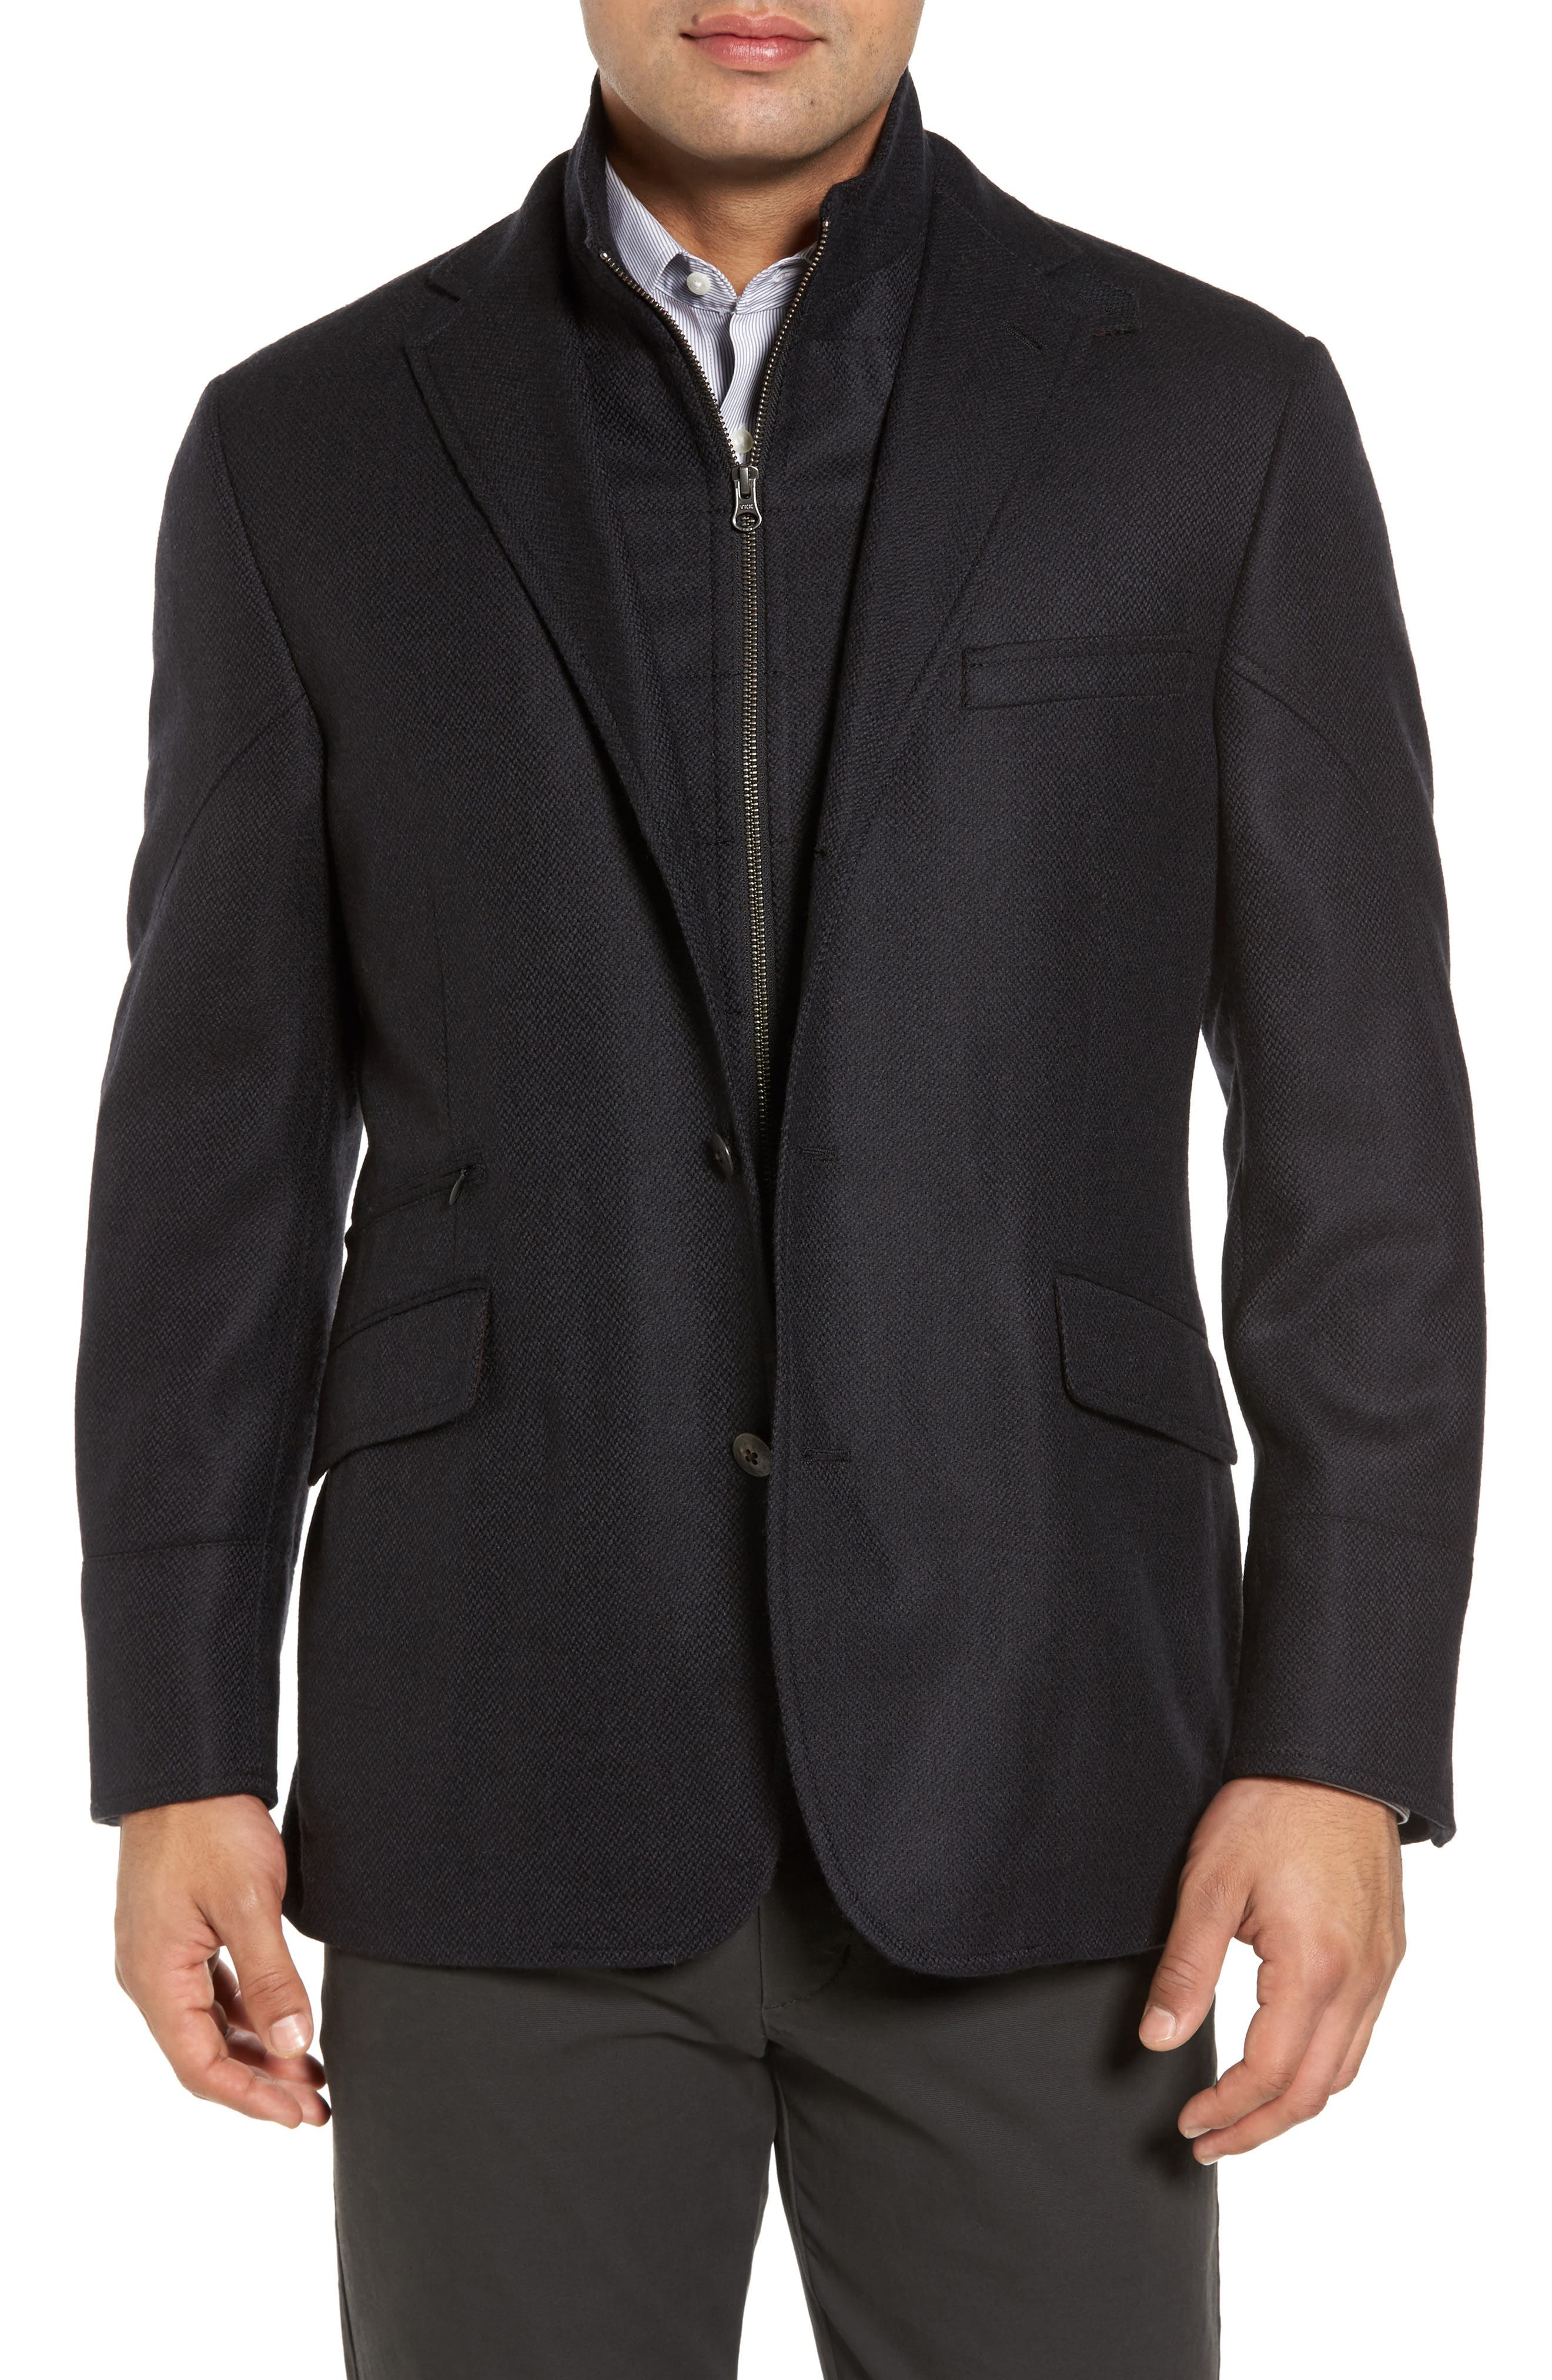 Alternate Image 1 Selected - Kroon Ritchie Aim Hybrid Classic Fit Wool & Cashmere Sport Coat